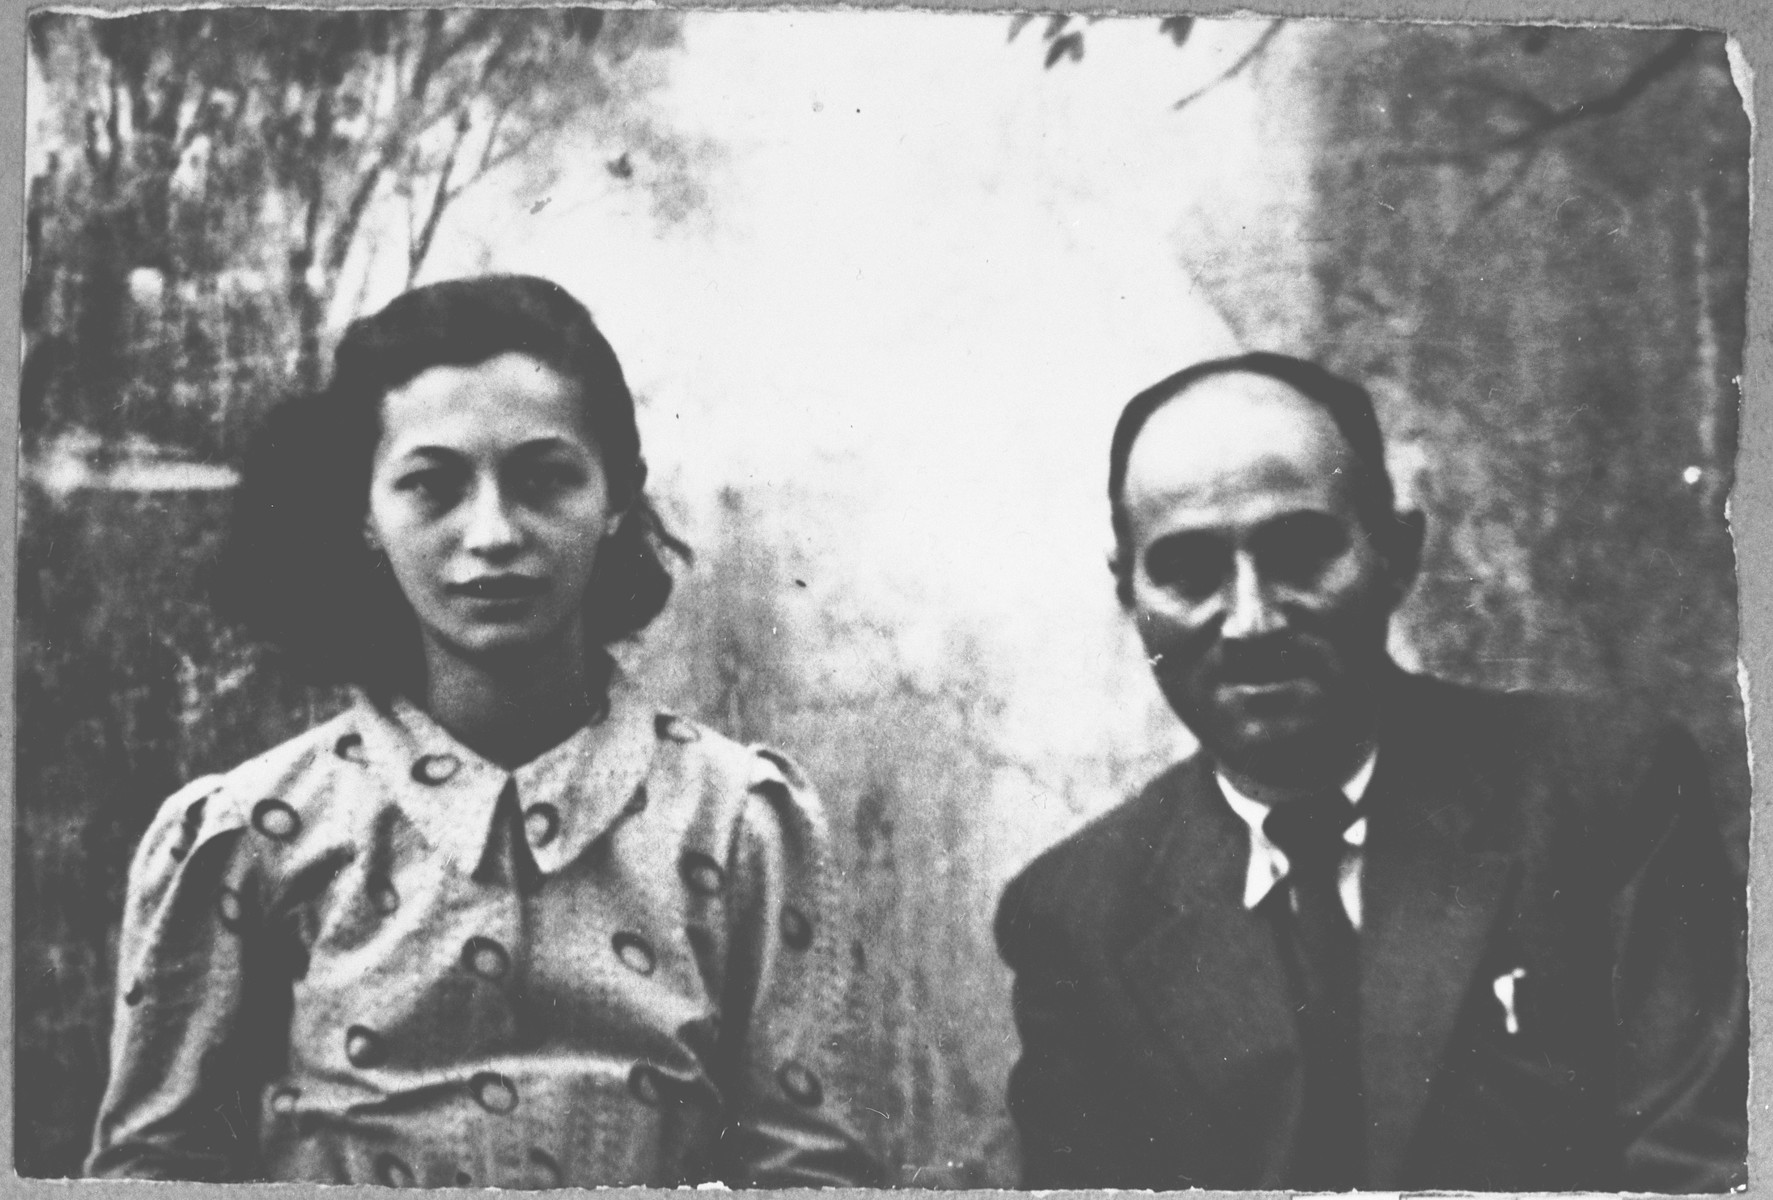 Portrait of Avram Kamchi and his daughter, Palomba.  Avram was a manufacturer and Palomba, a student.  They lived at Dalmatinska 57 in Bitola.